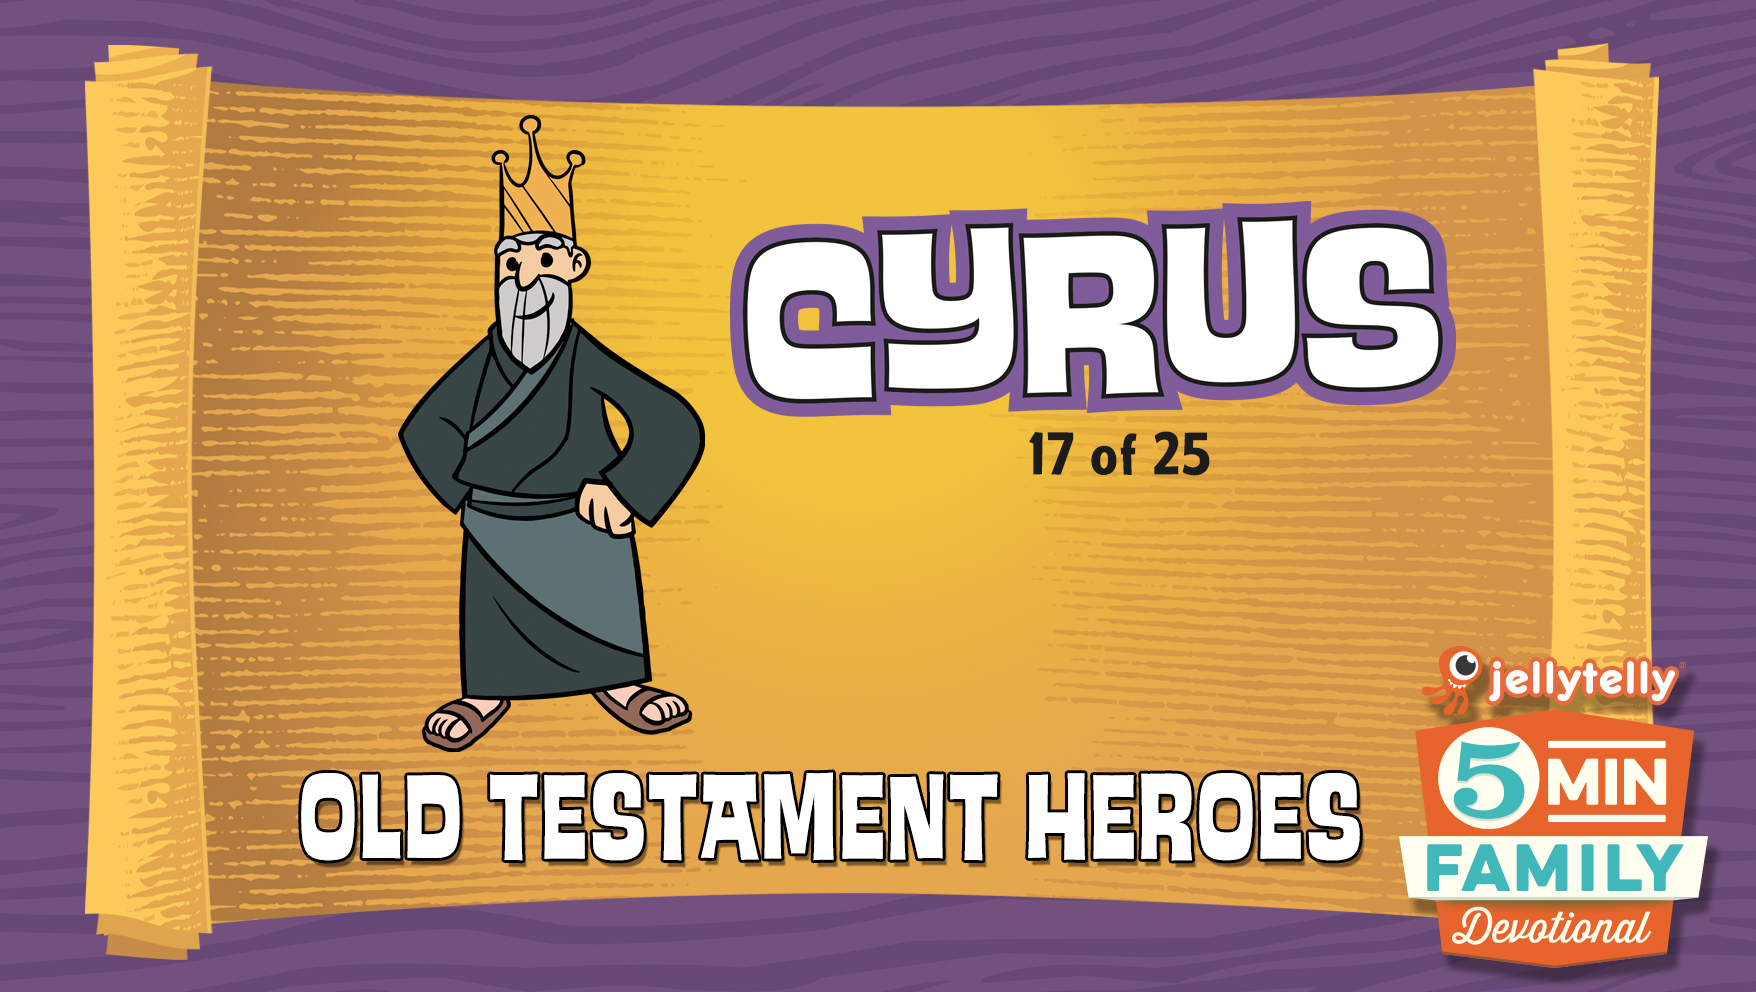 Cyrus: Old Testament Heroes - 5 Minute Family Devotional